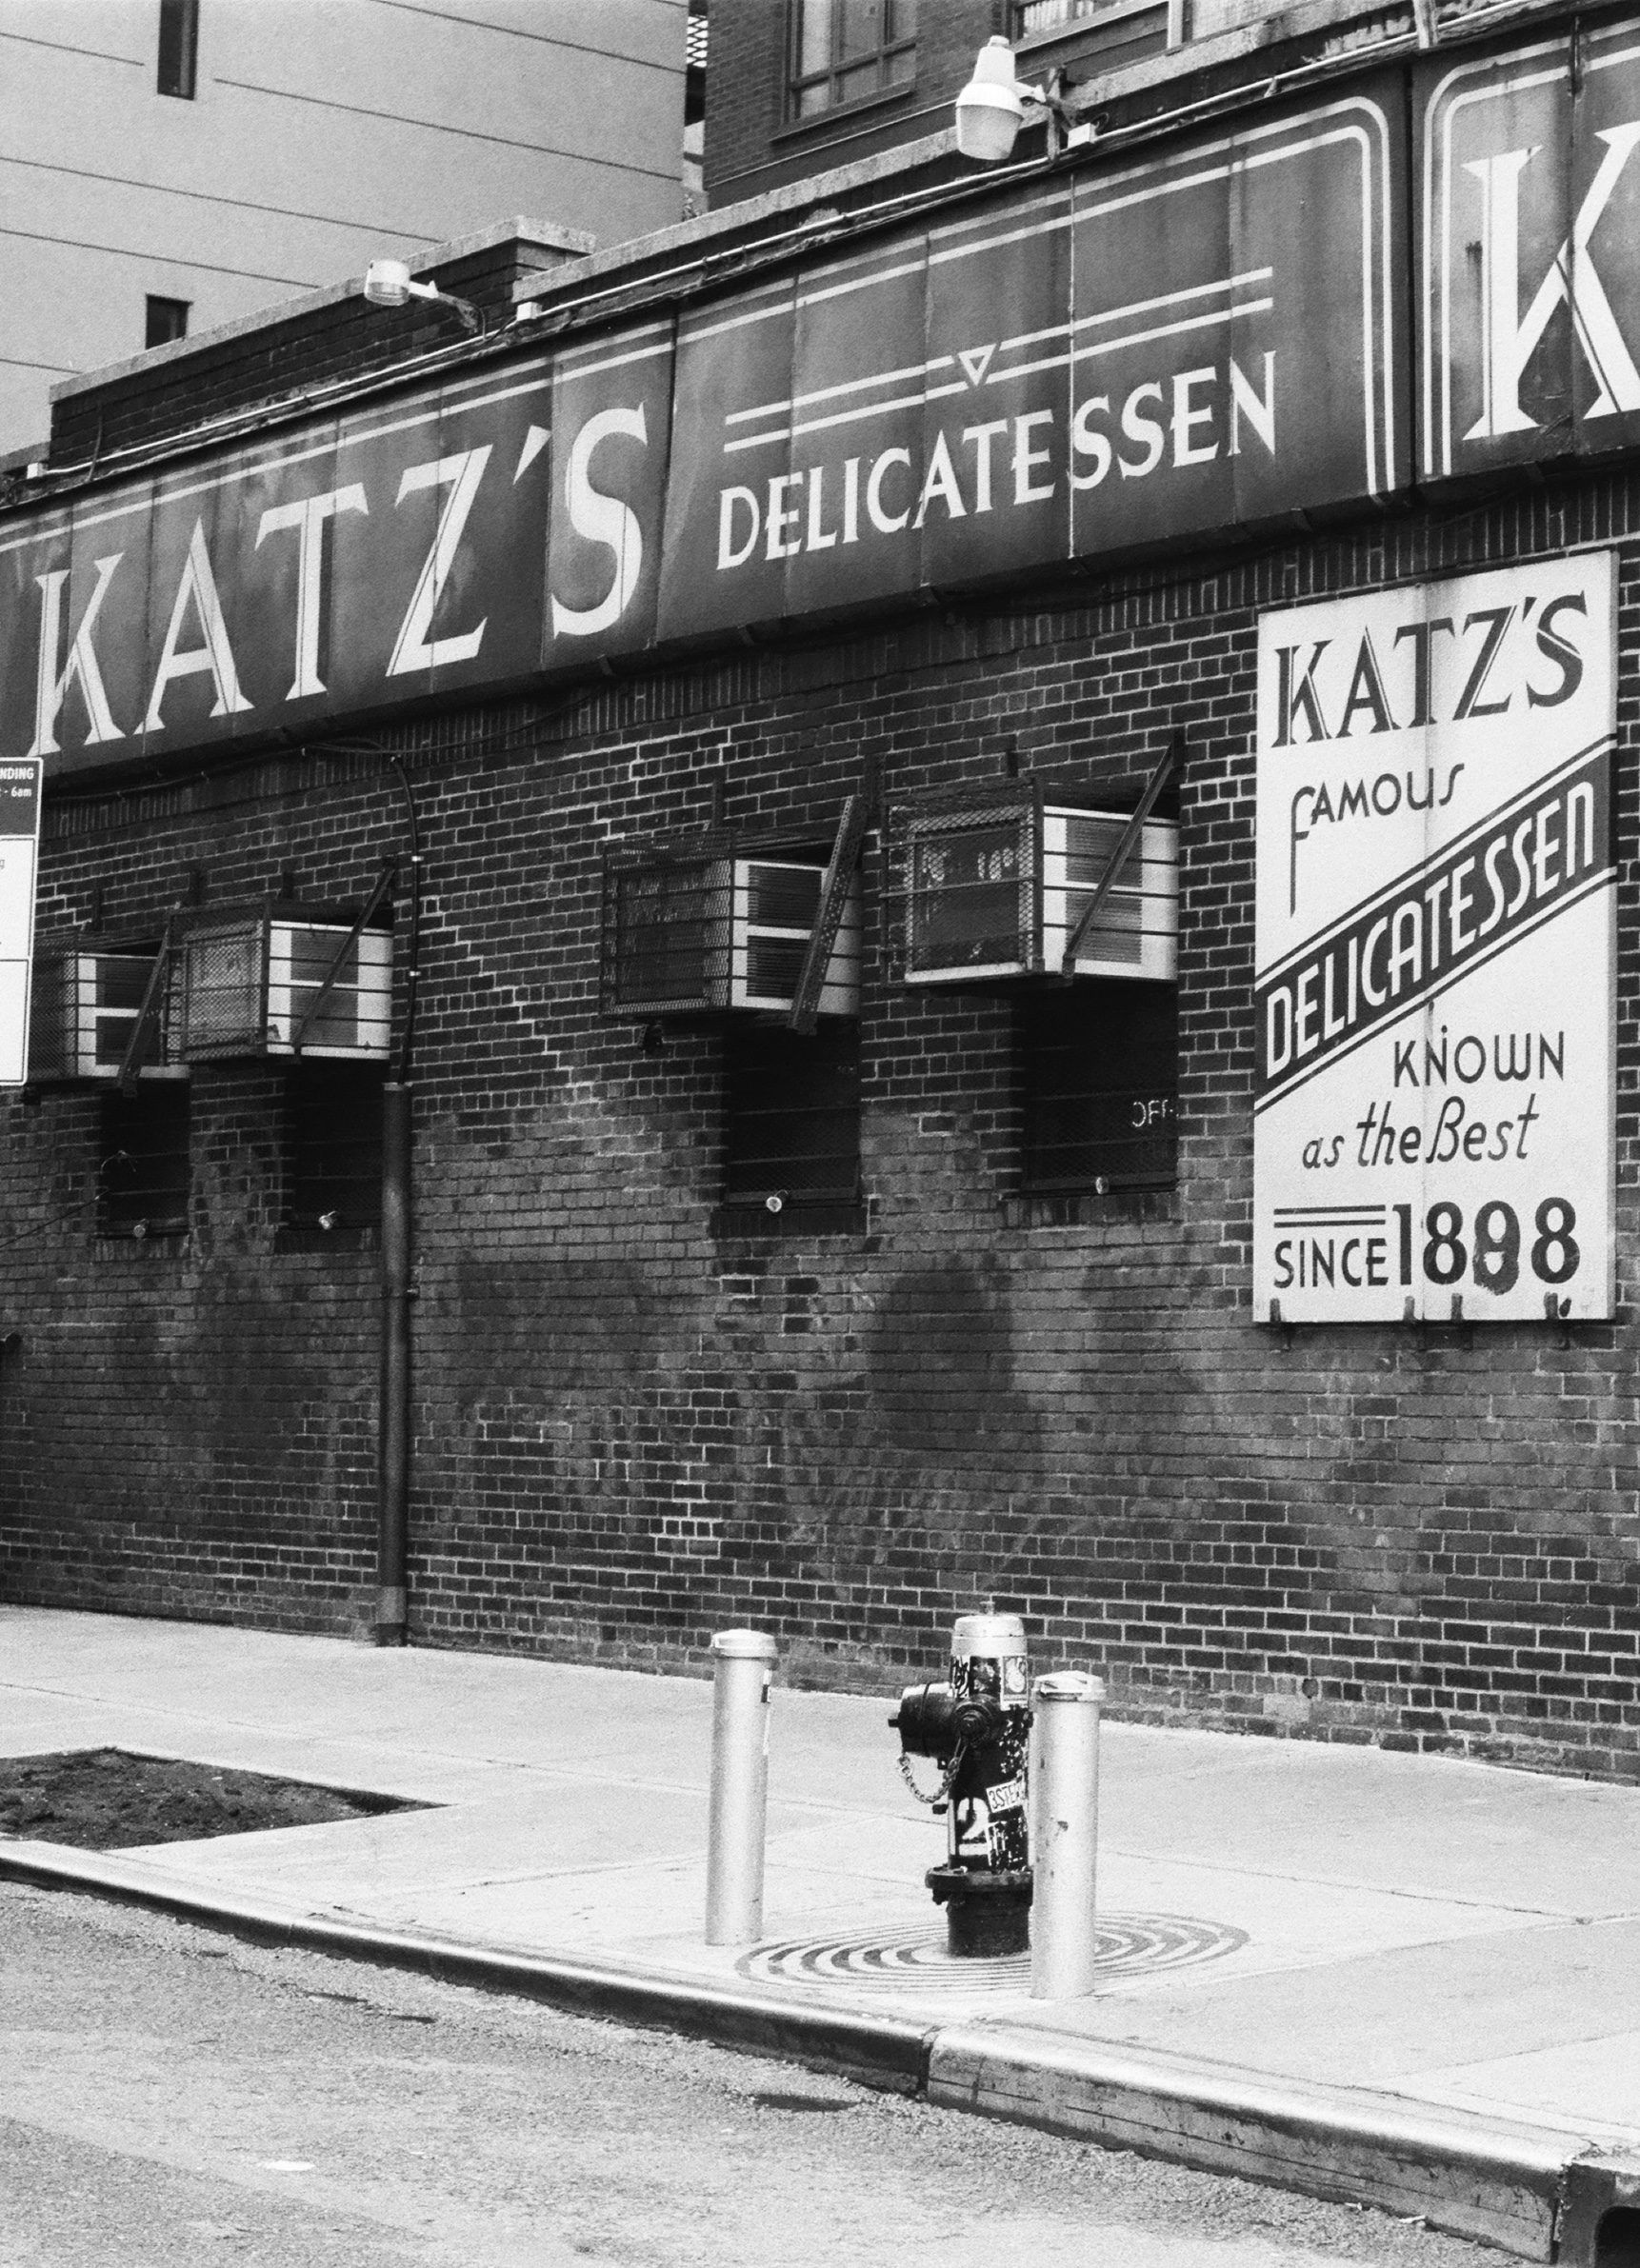 Katz's delie on HP5 Black and white film by Louis Kassam